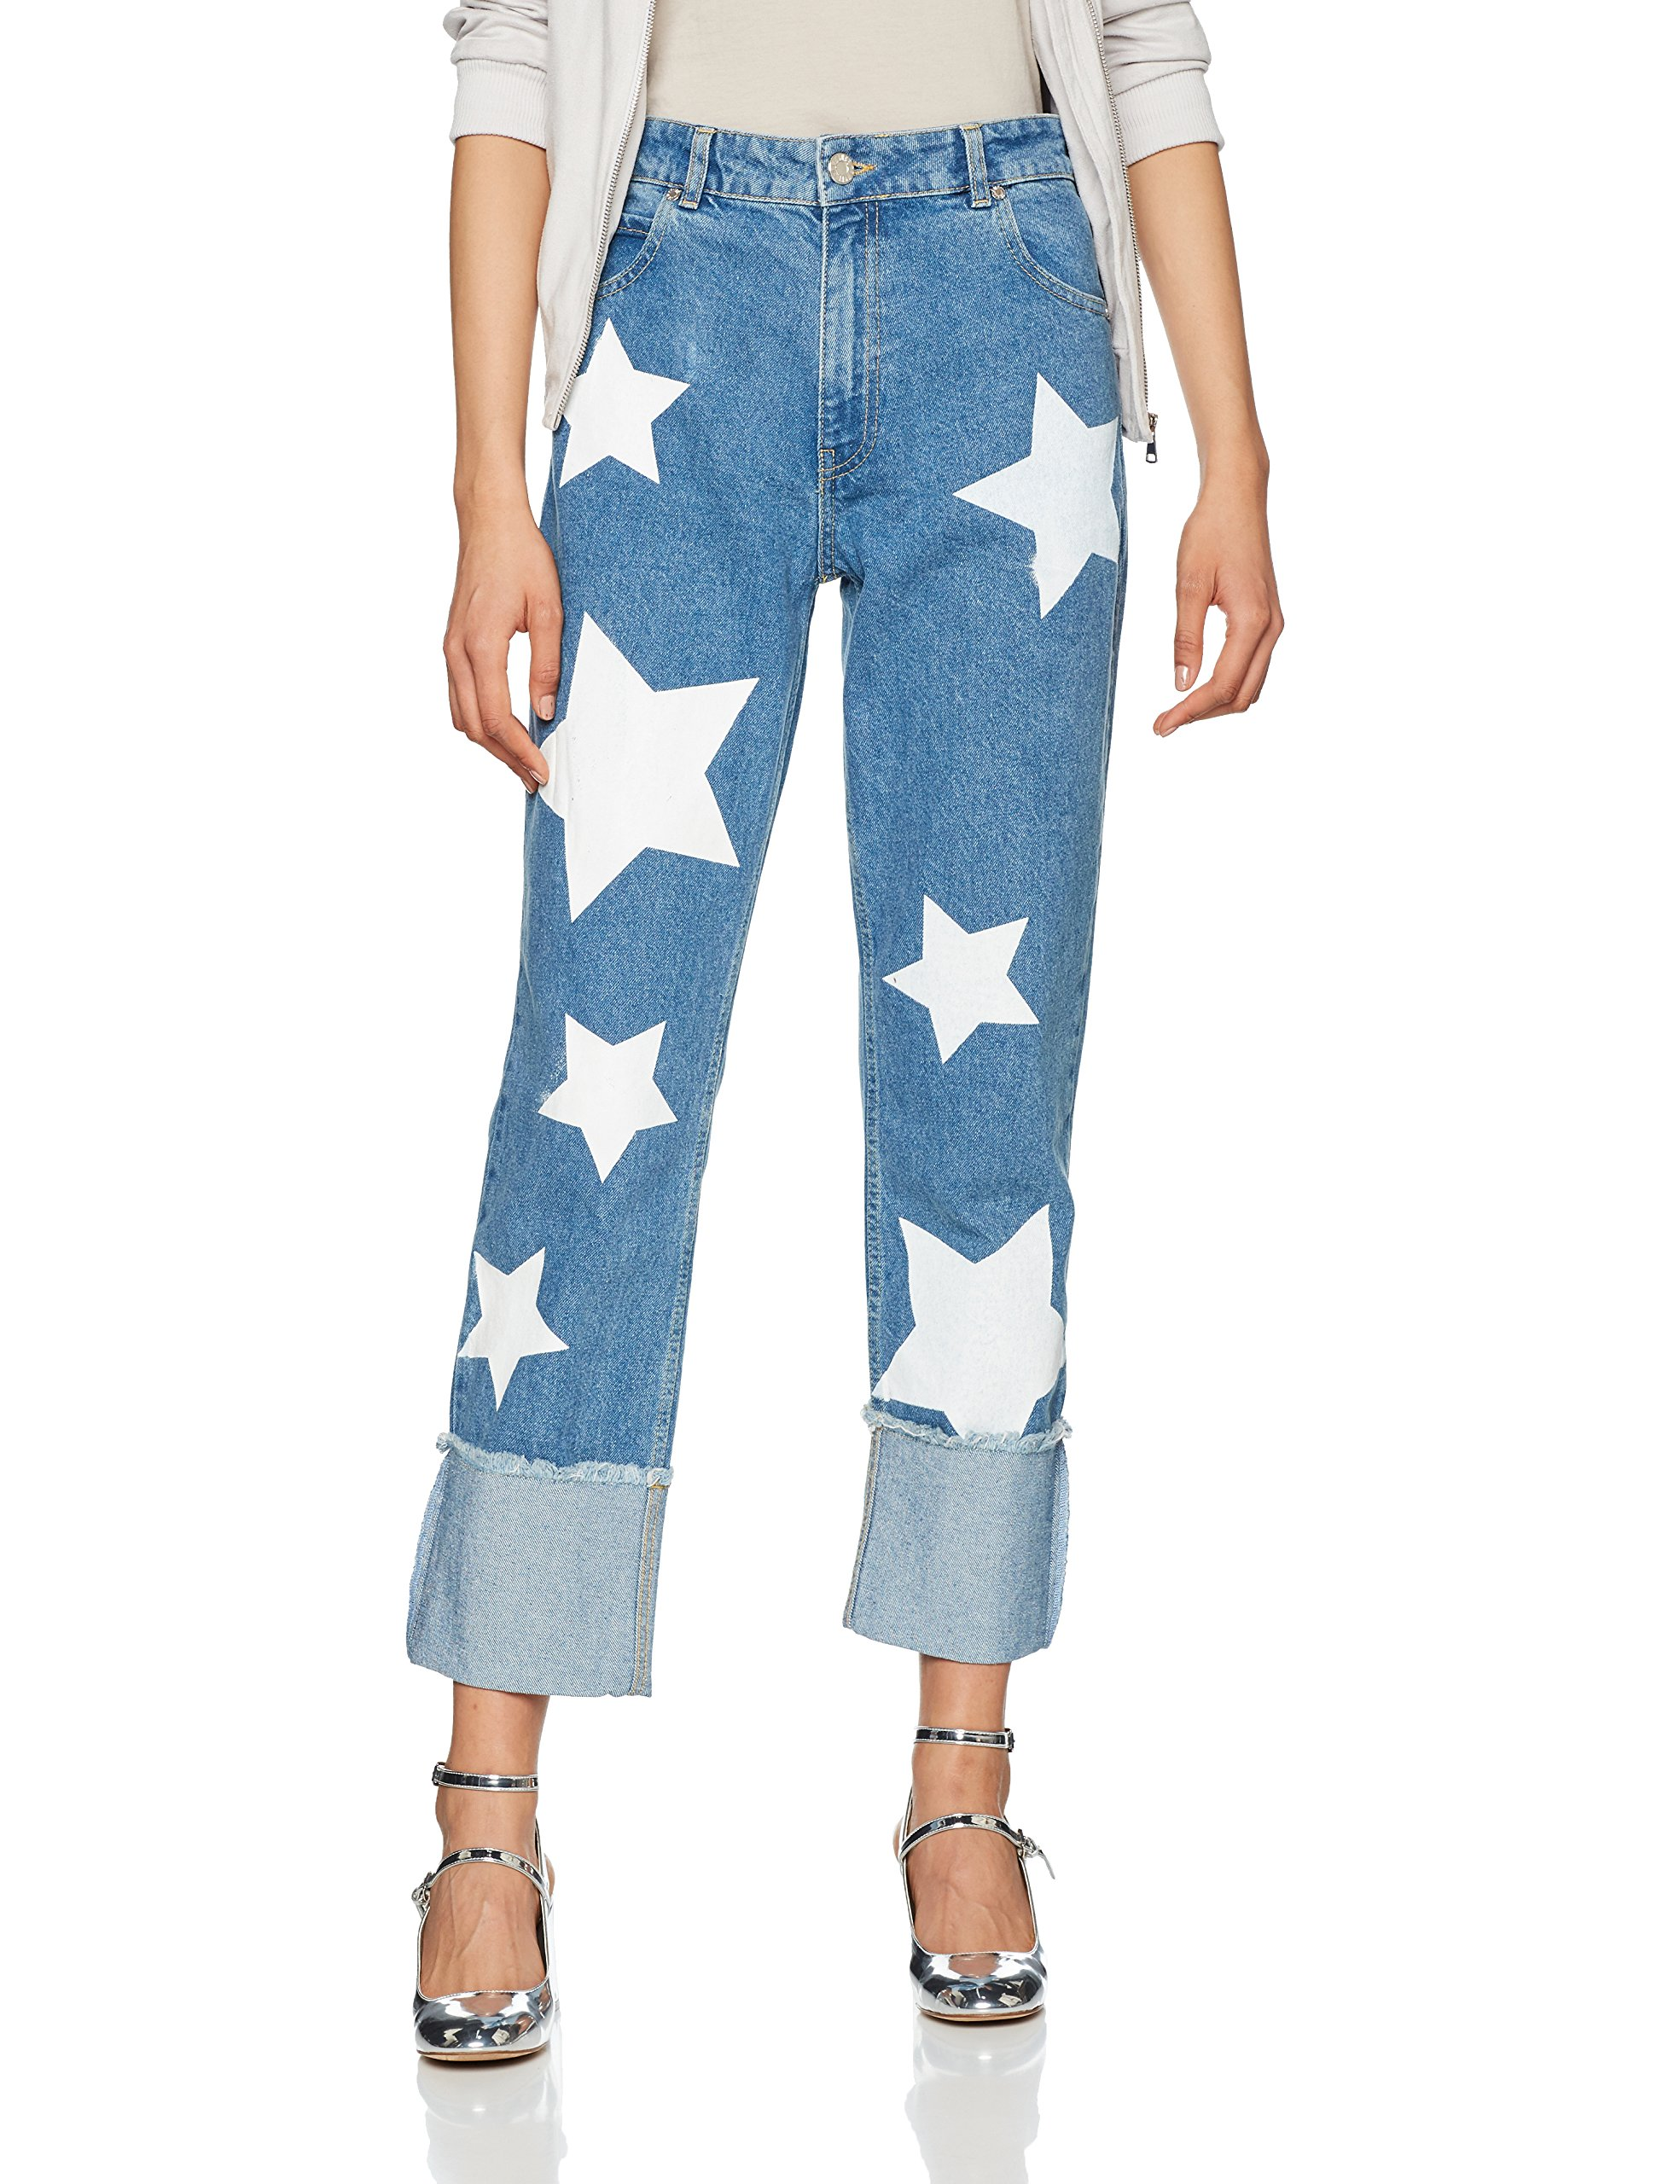 Up Star Deep Turn Of SlimBleu Printed House Blue38 Holland Femme Jeans mN80vnw